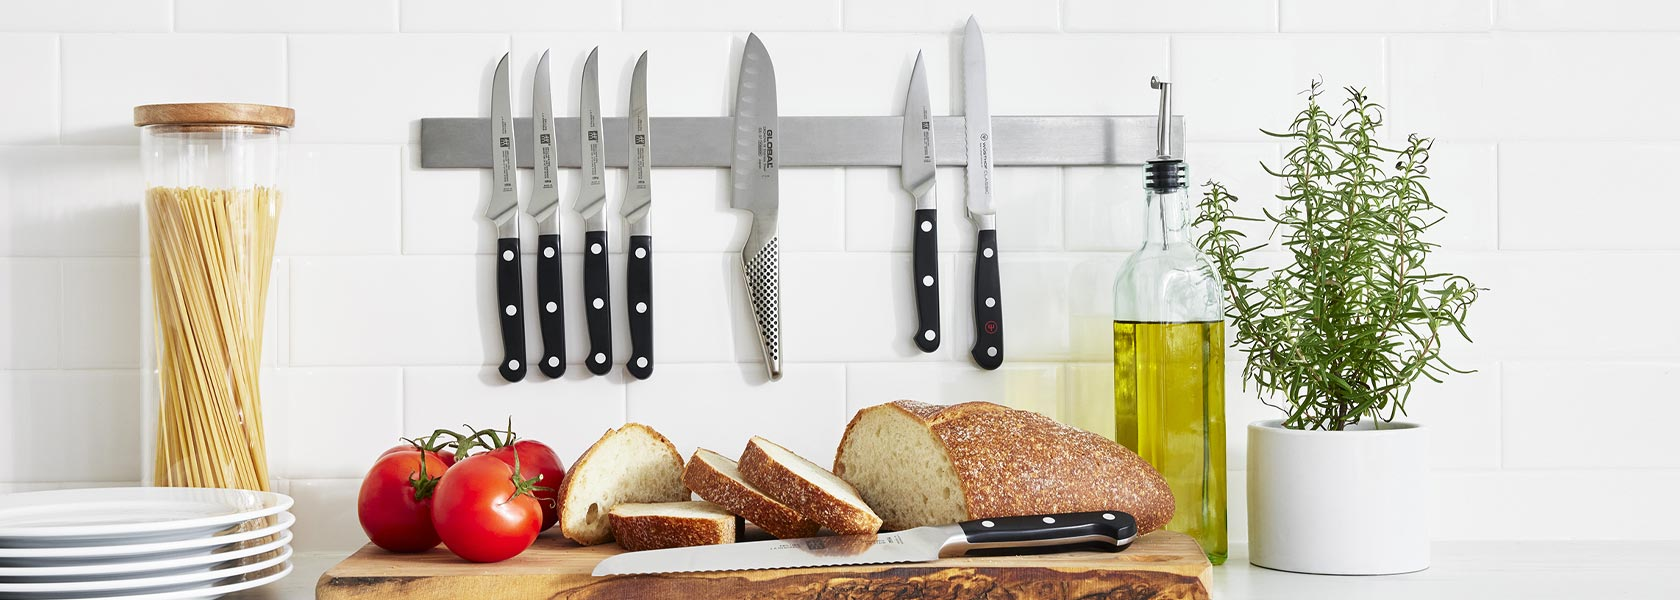 Chef's knives and paring knives on wooden cutting board